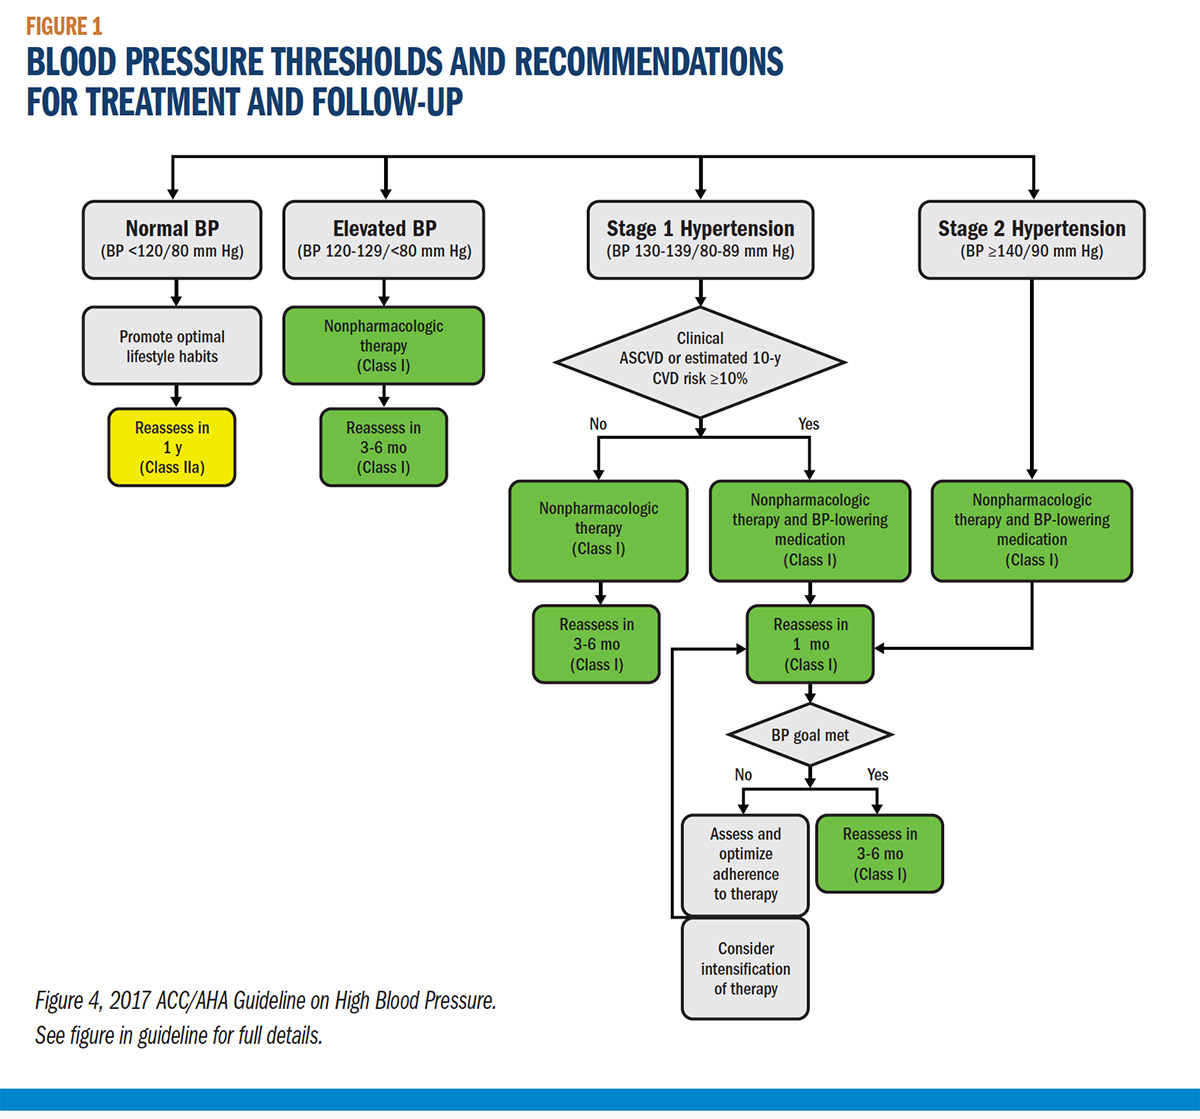 Cover story the 2017 high blood pressure guideline risk figure 1 blood pressure thresholds and recommendations for treatment and follow up nvjuhfo Choice Image